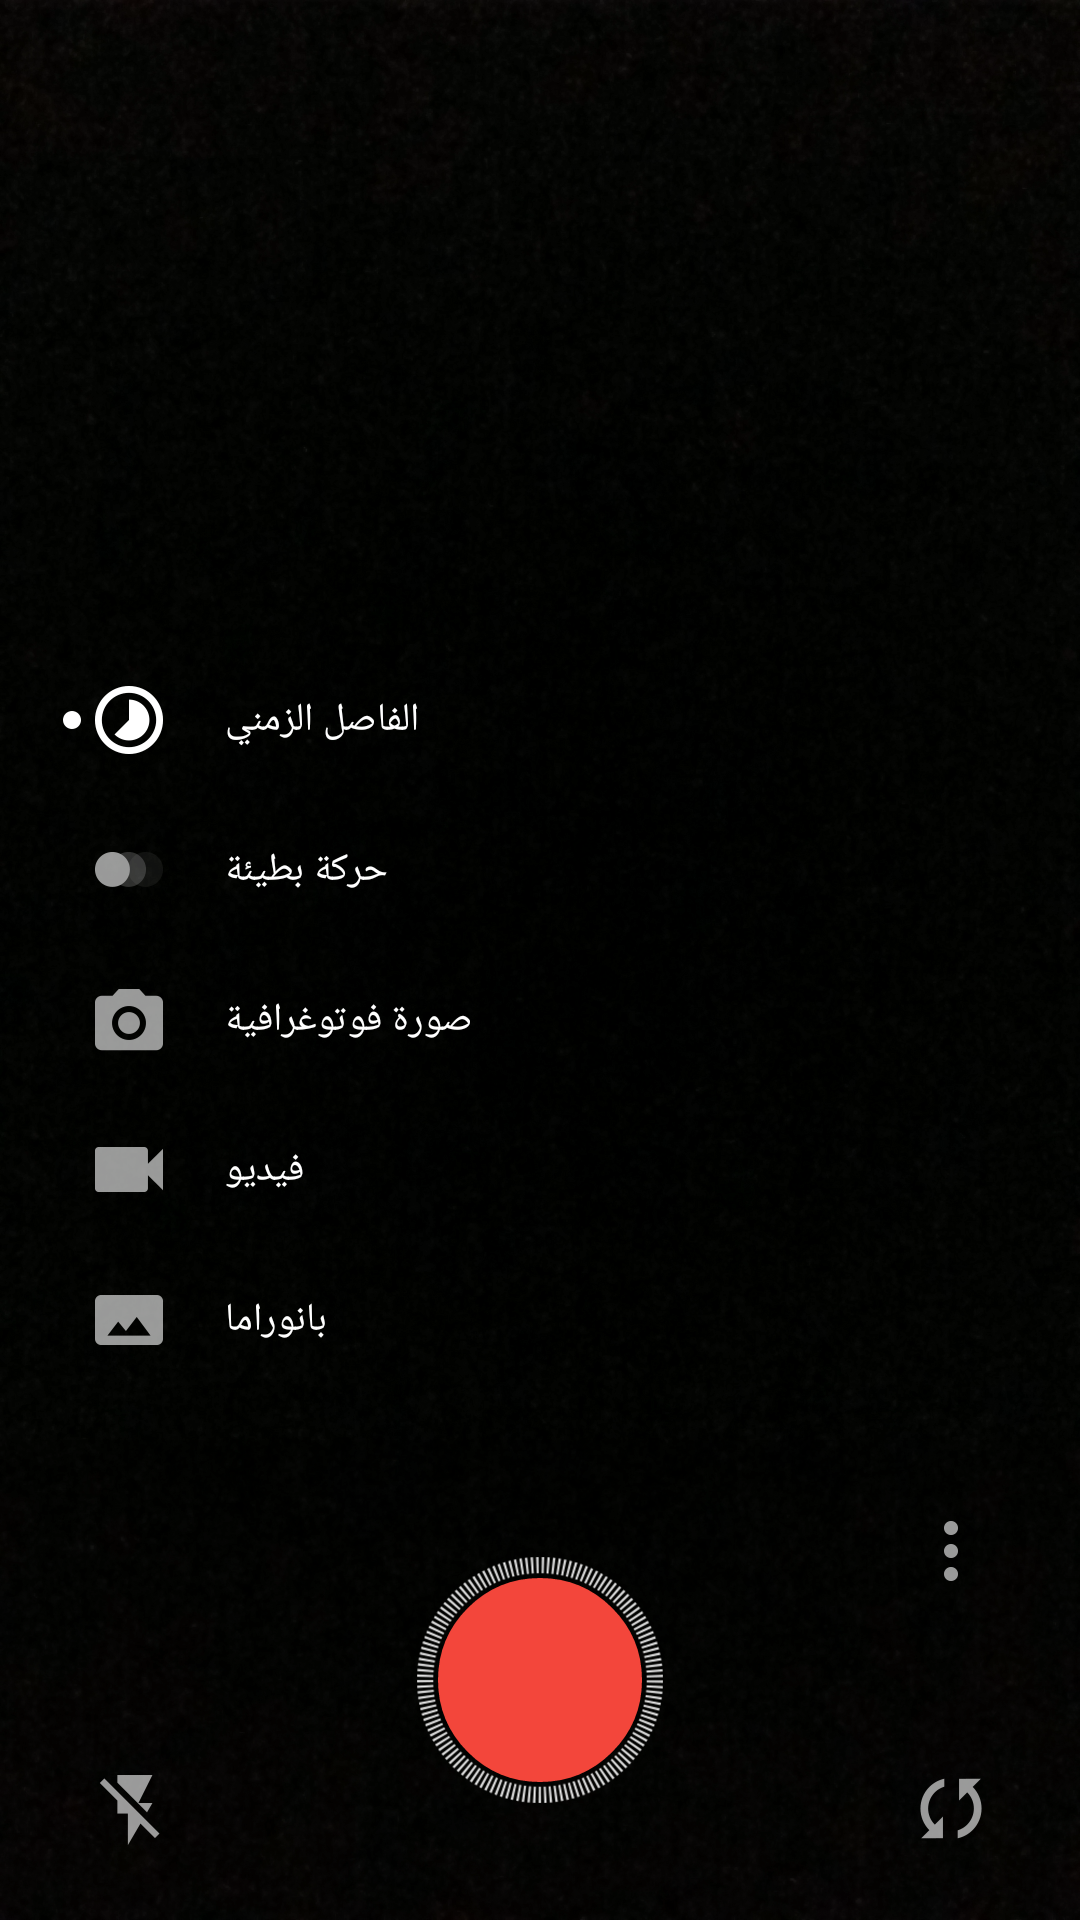 Screenshot_٢٠١٥-١١-٢٠-٢٢-٢٧-١٤